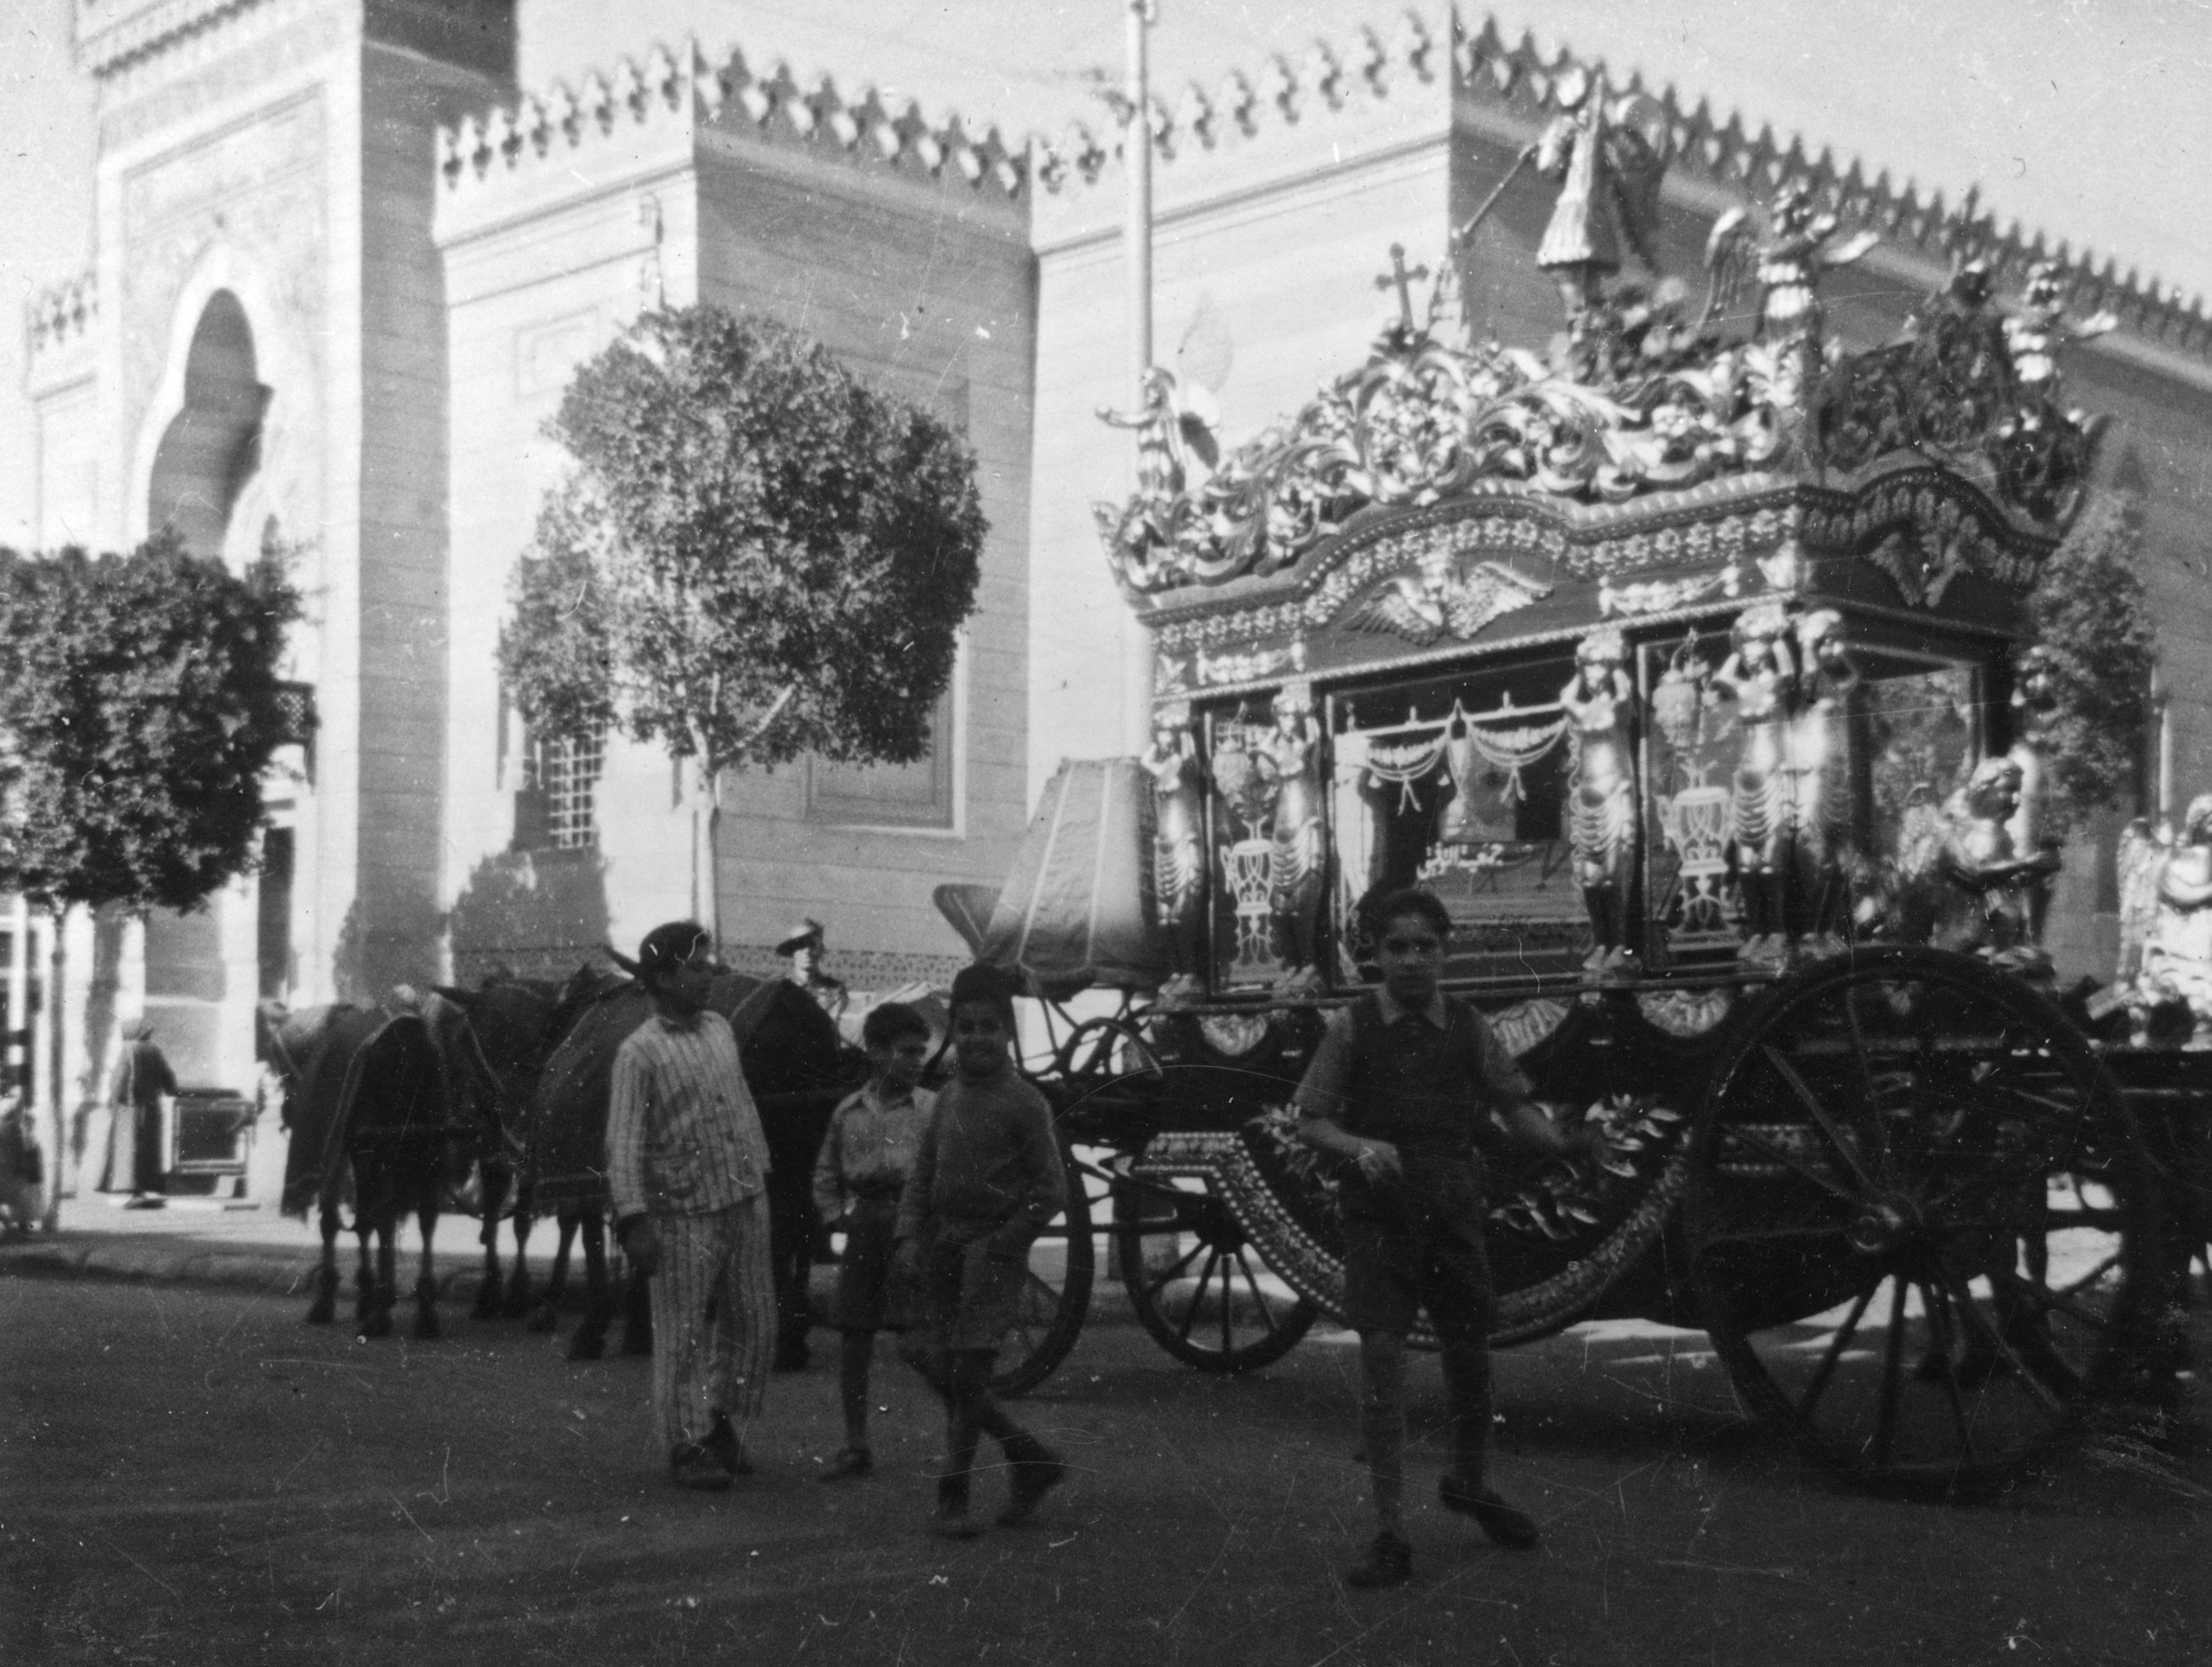 Egyptian funeral, c1941